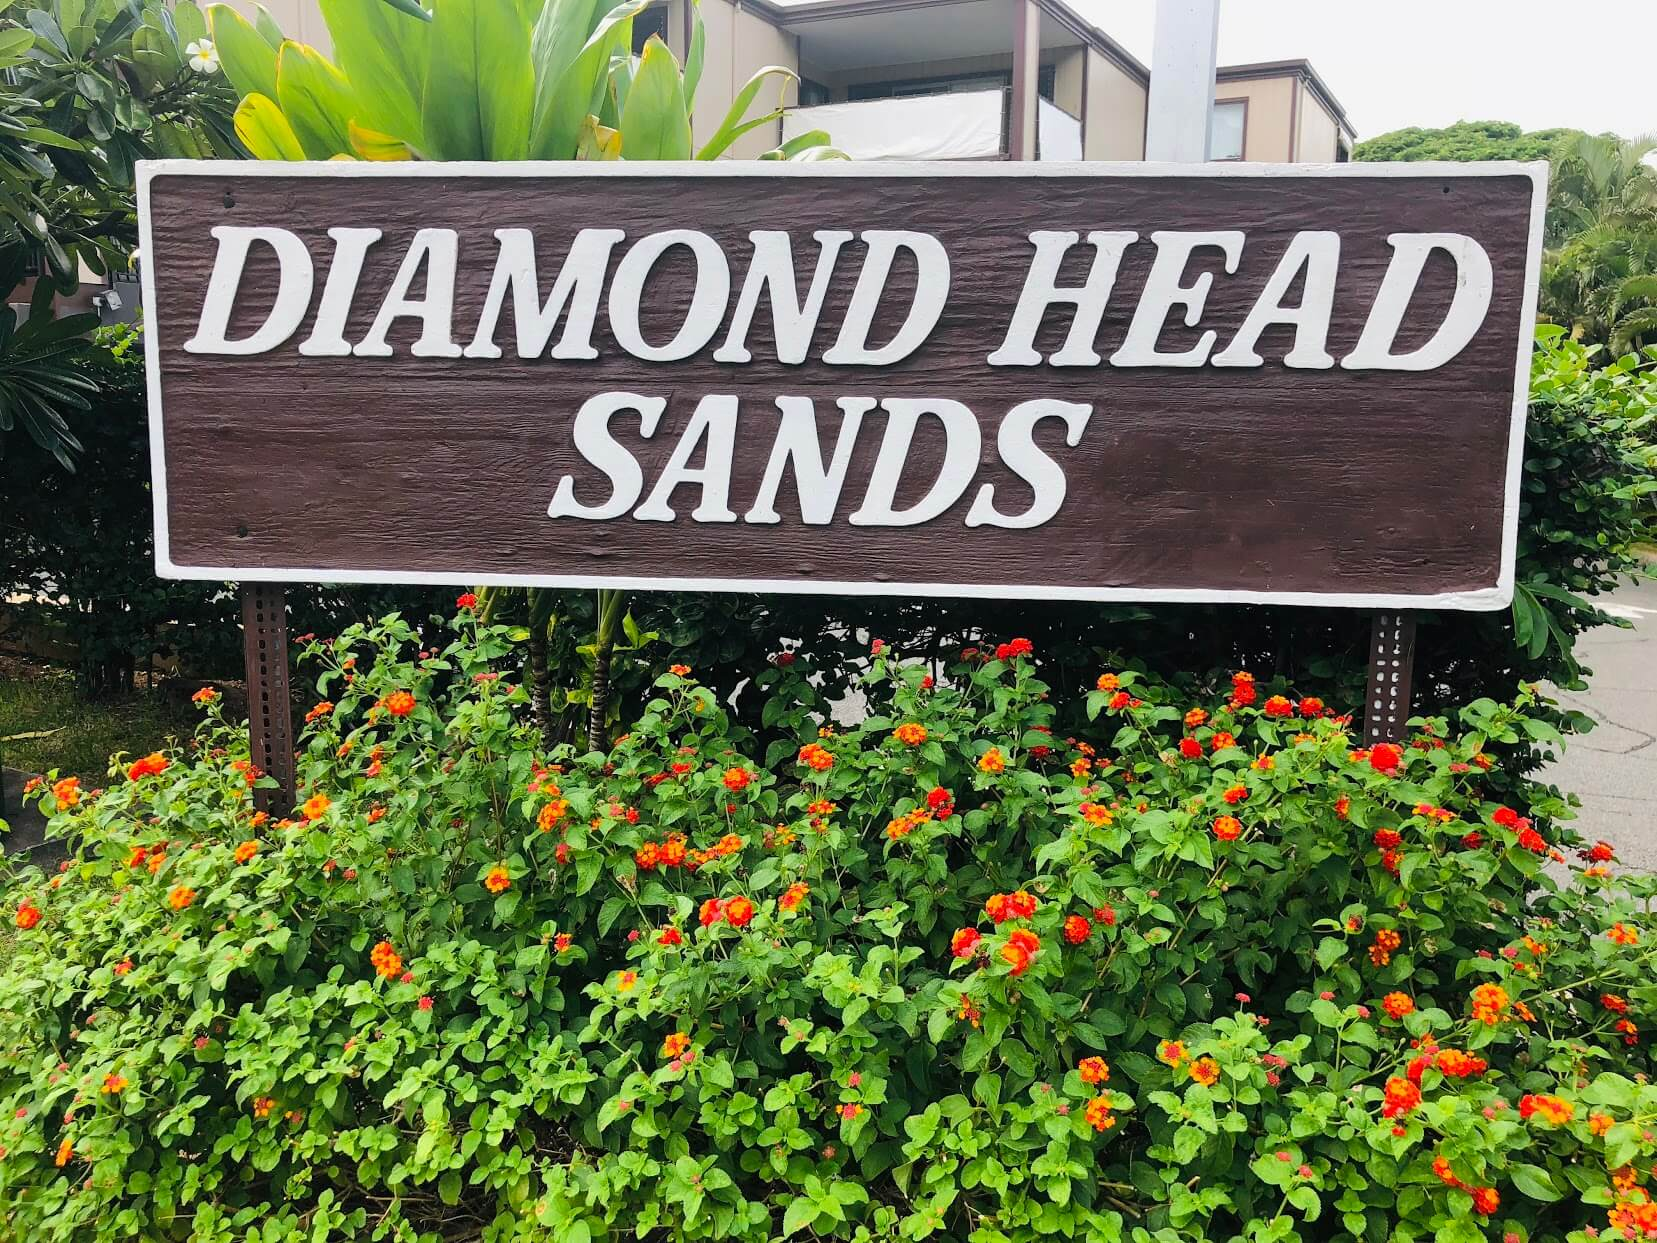 Diamond Head Sandsの看板